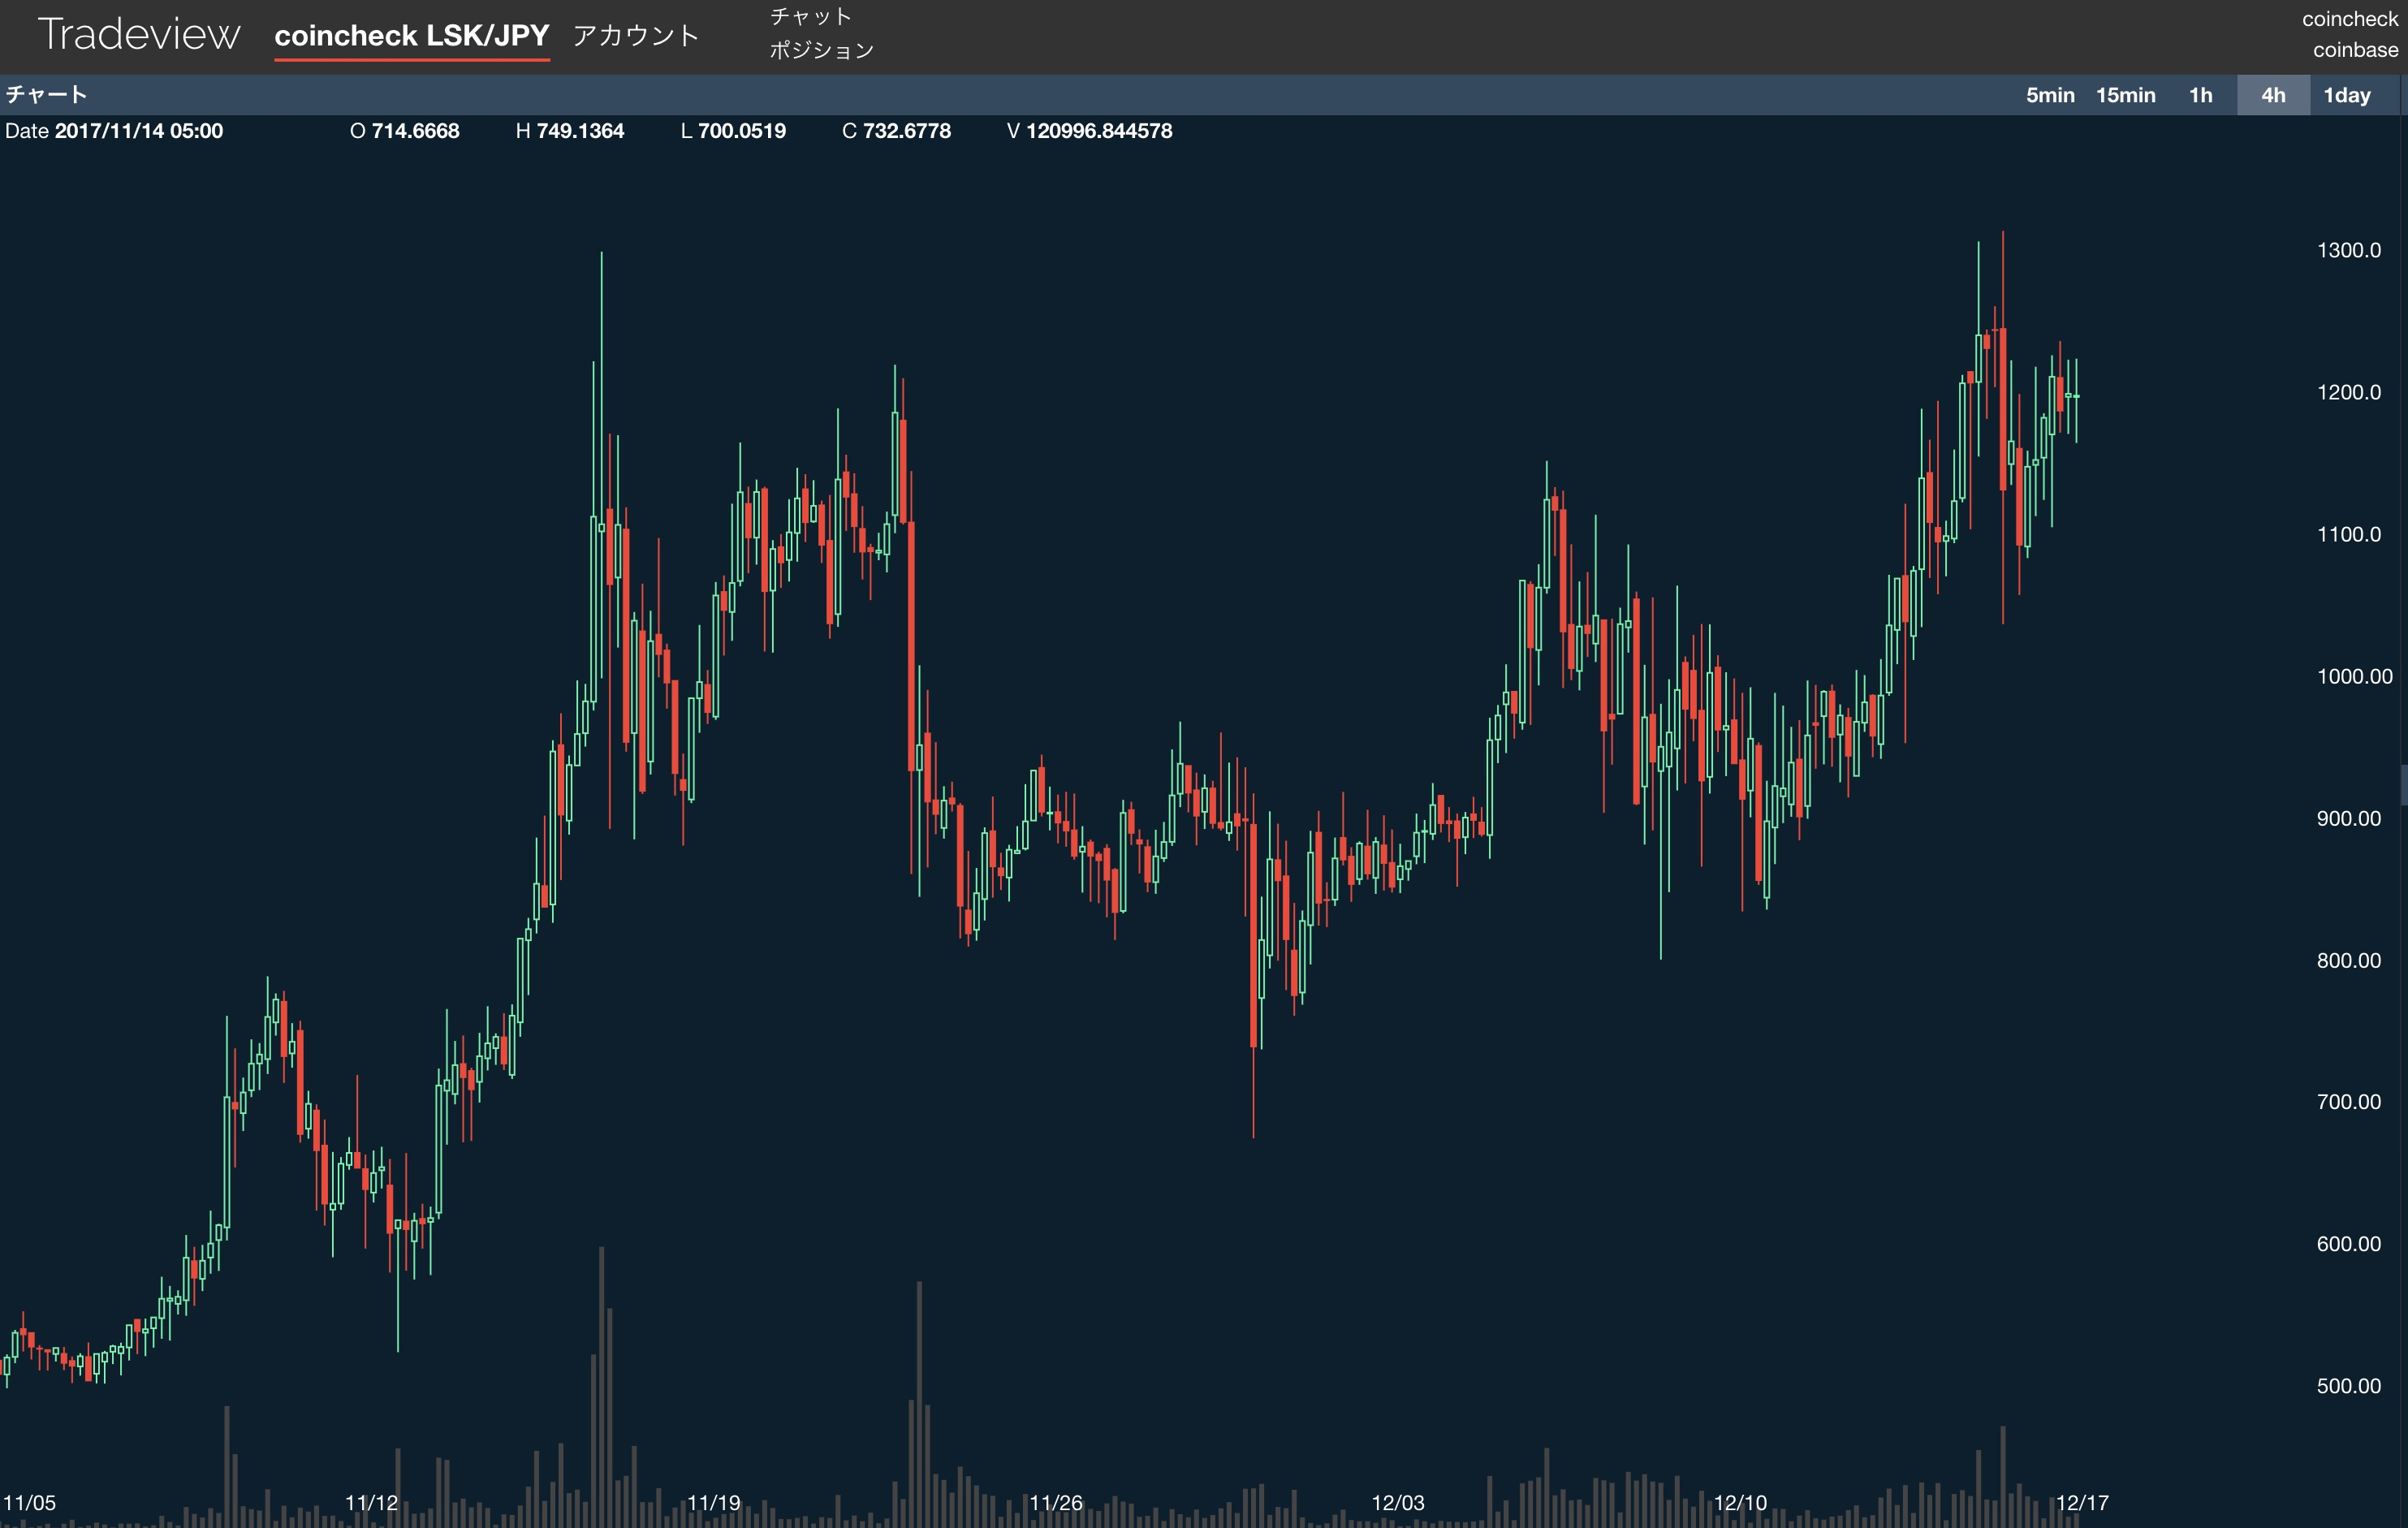 LSK JPY coincheck tradeview